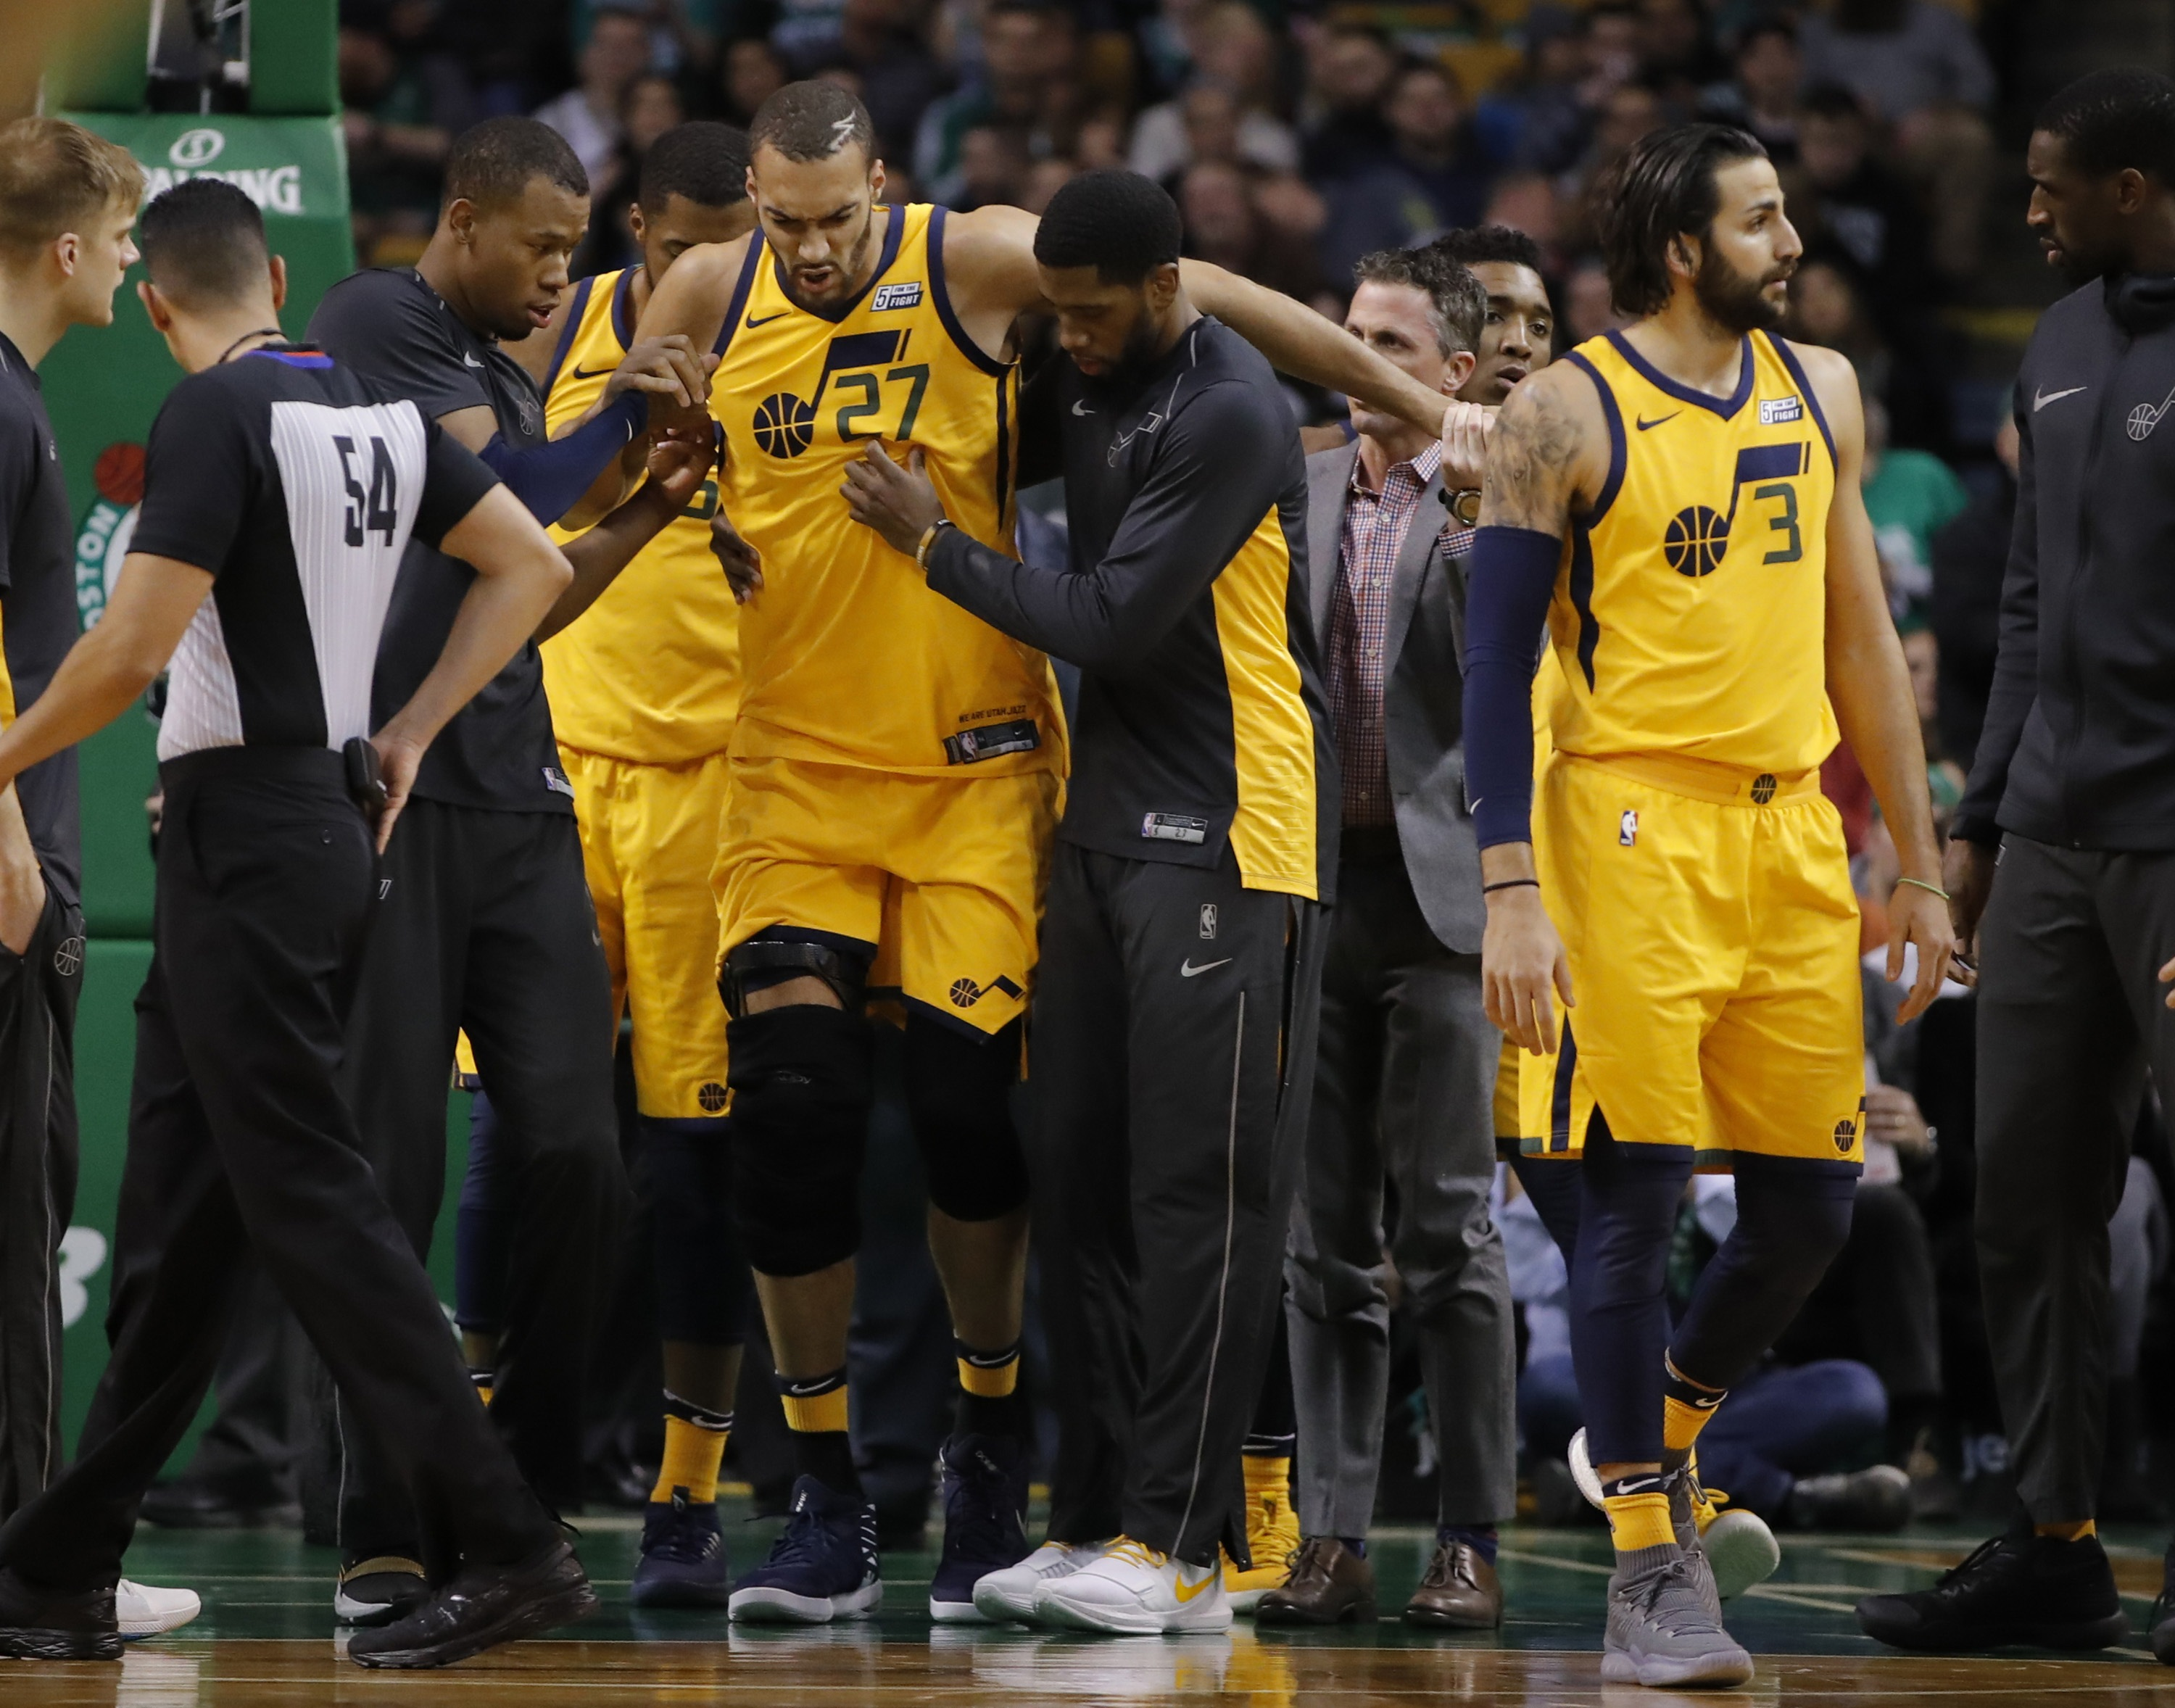 Rudy Gobert goes down with scary looking leg injury